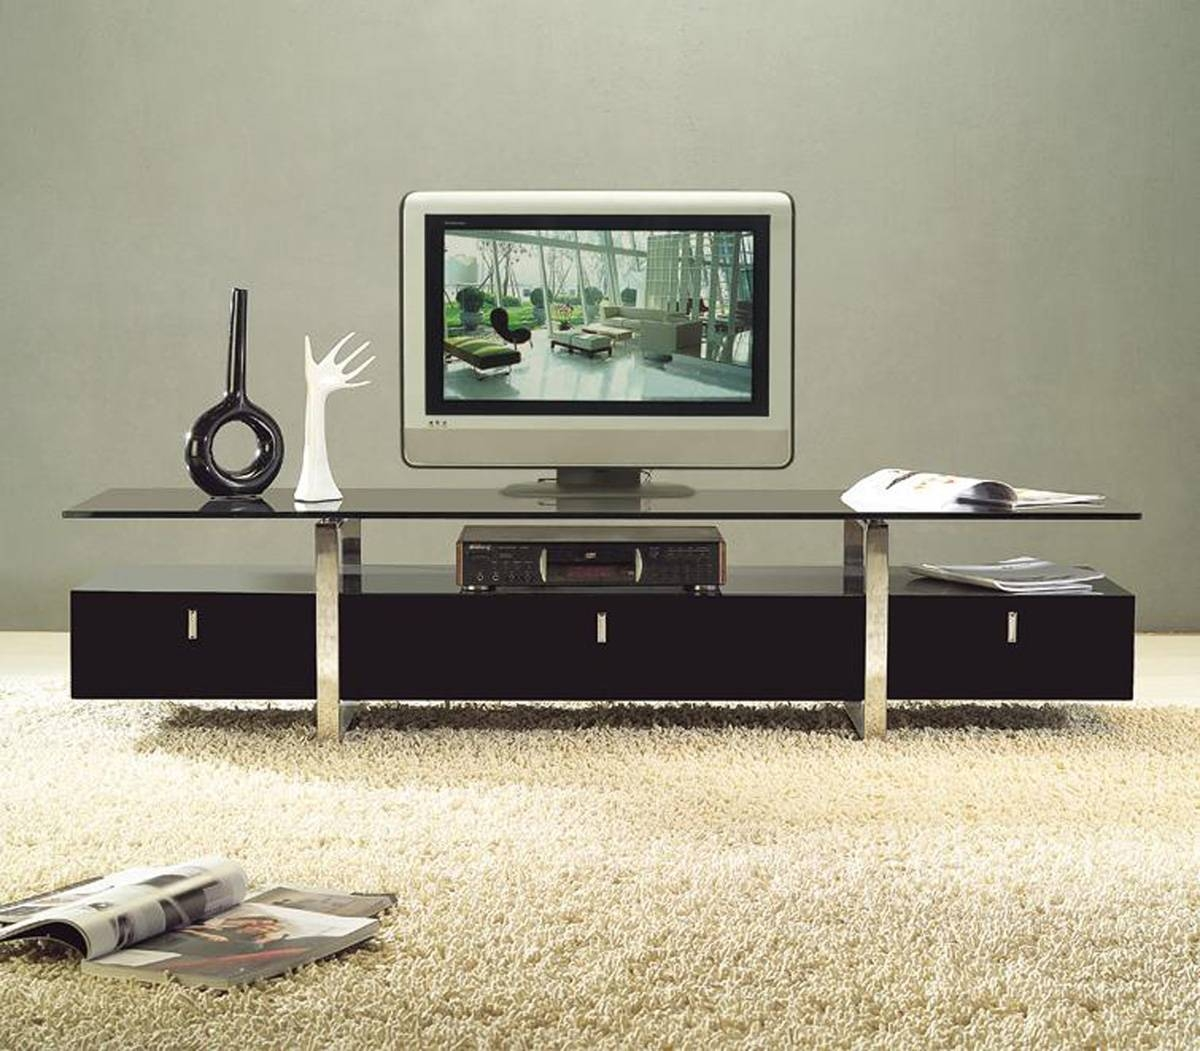 Clear-Lined Design Contemporary Brown Color Tv Stand With Glass with regard to Stylish Tv Stands (Image 2 of 15)